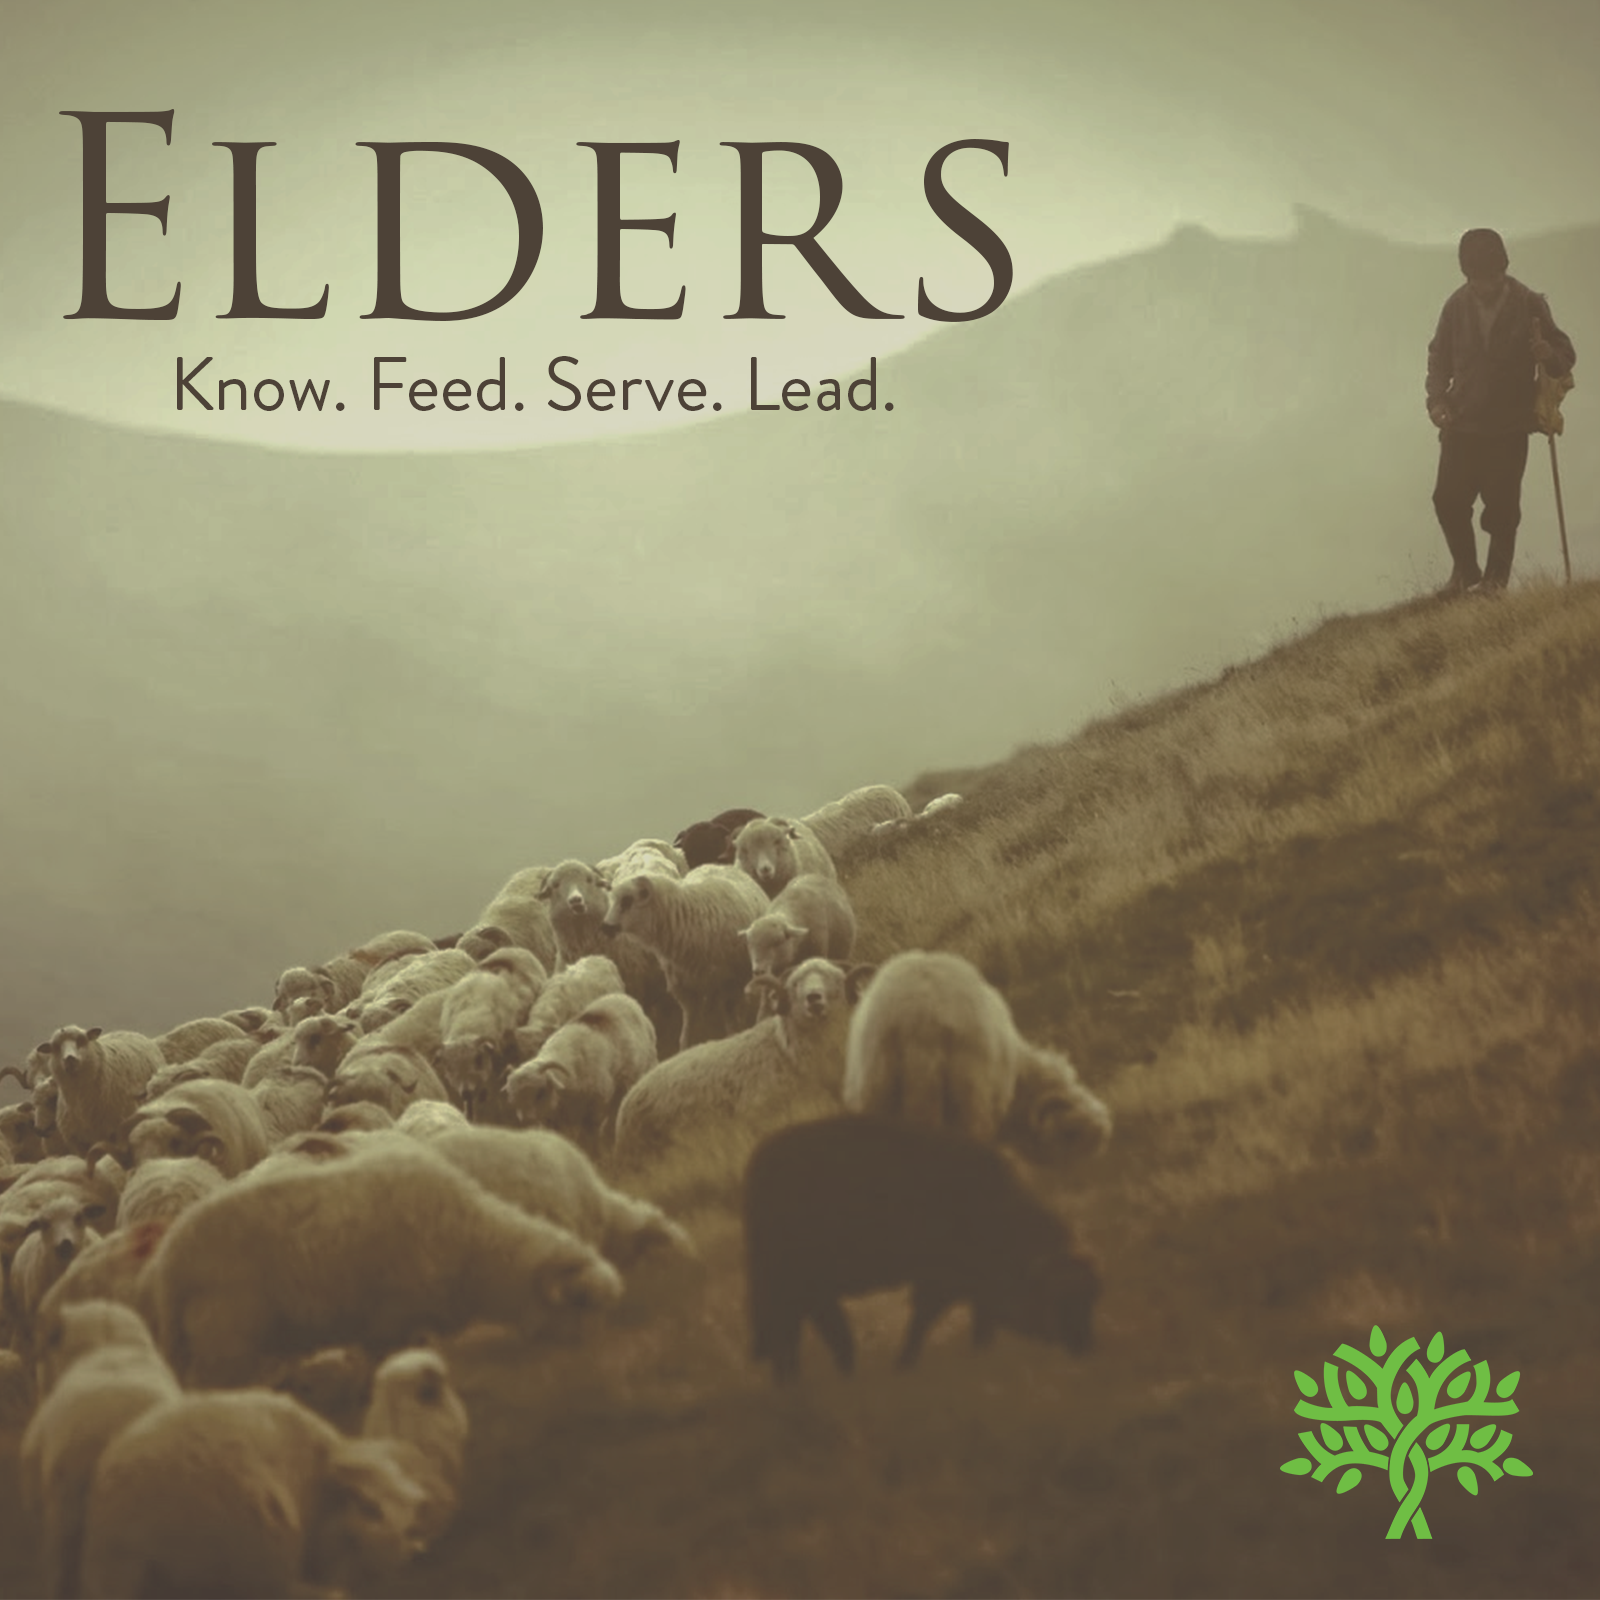 Elders image